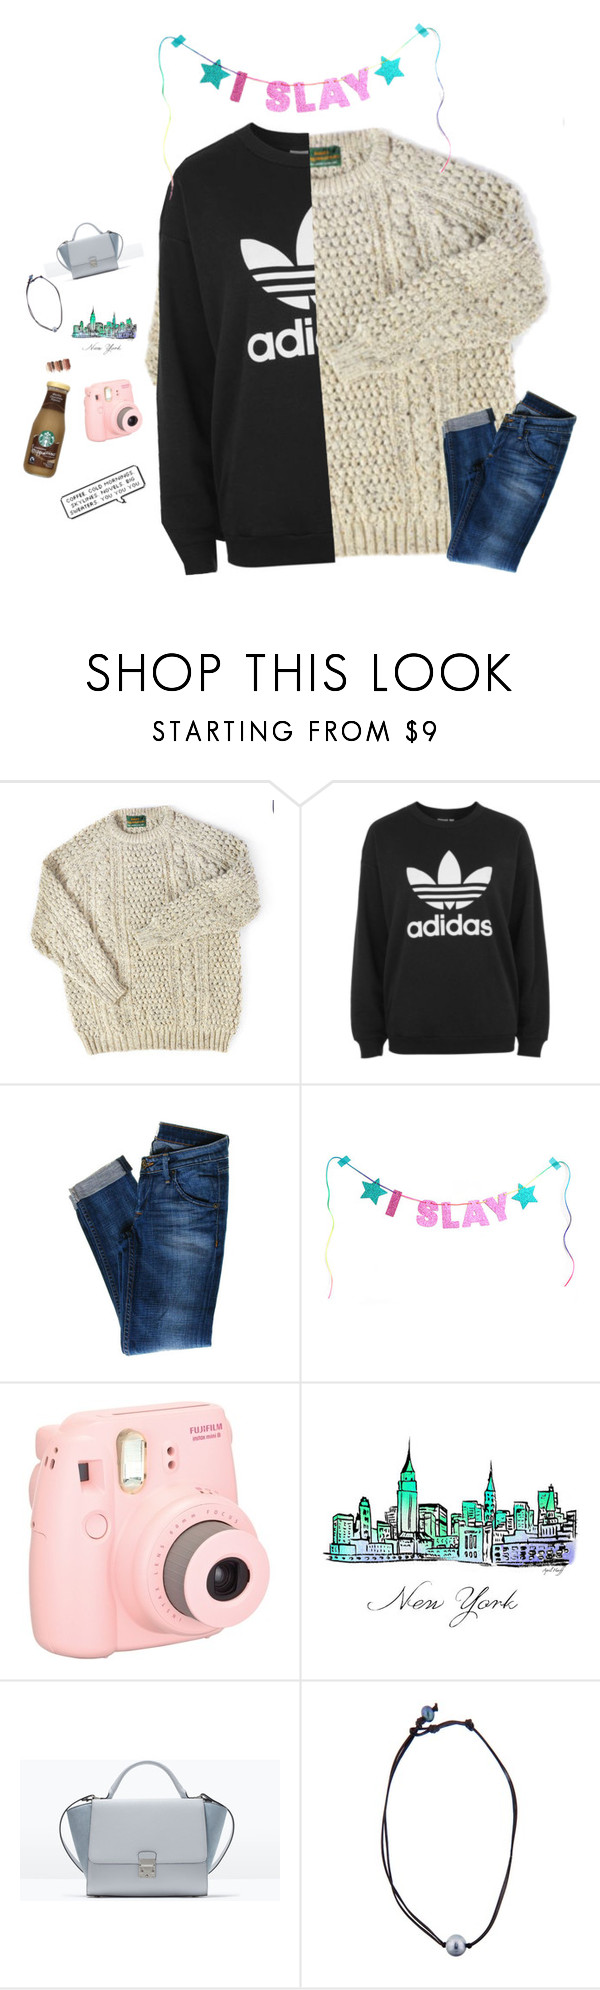 """""""opposite style challenge;city! rd!!!"""" by southernmermaid ❤ liked on Polyvore featuring adidas, Hudson Jeans, WALL, Fujifilm, Zara, tarte, Kala and country"""